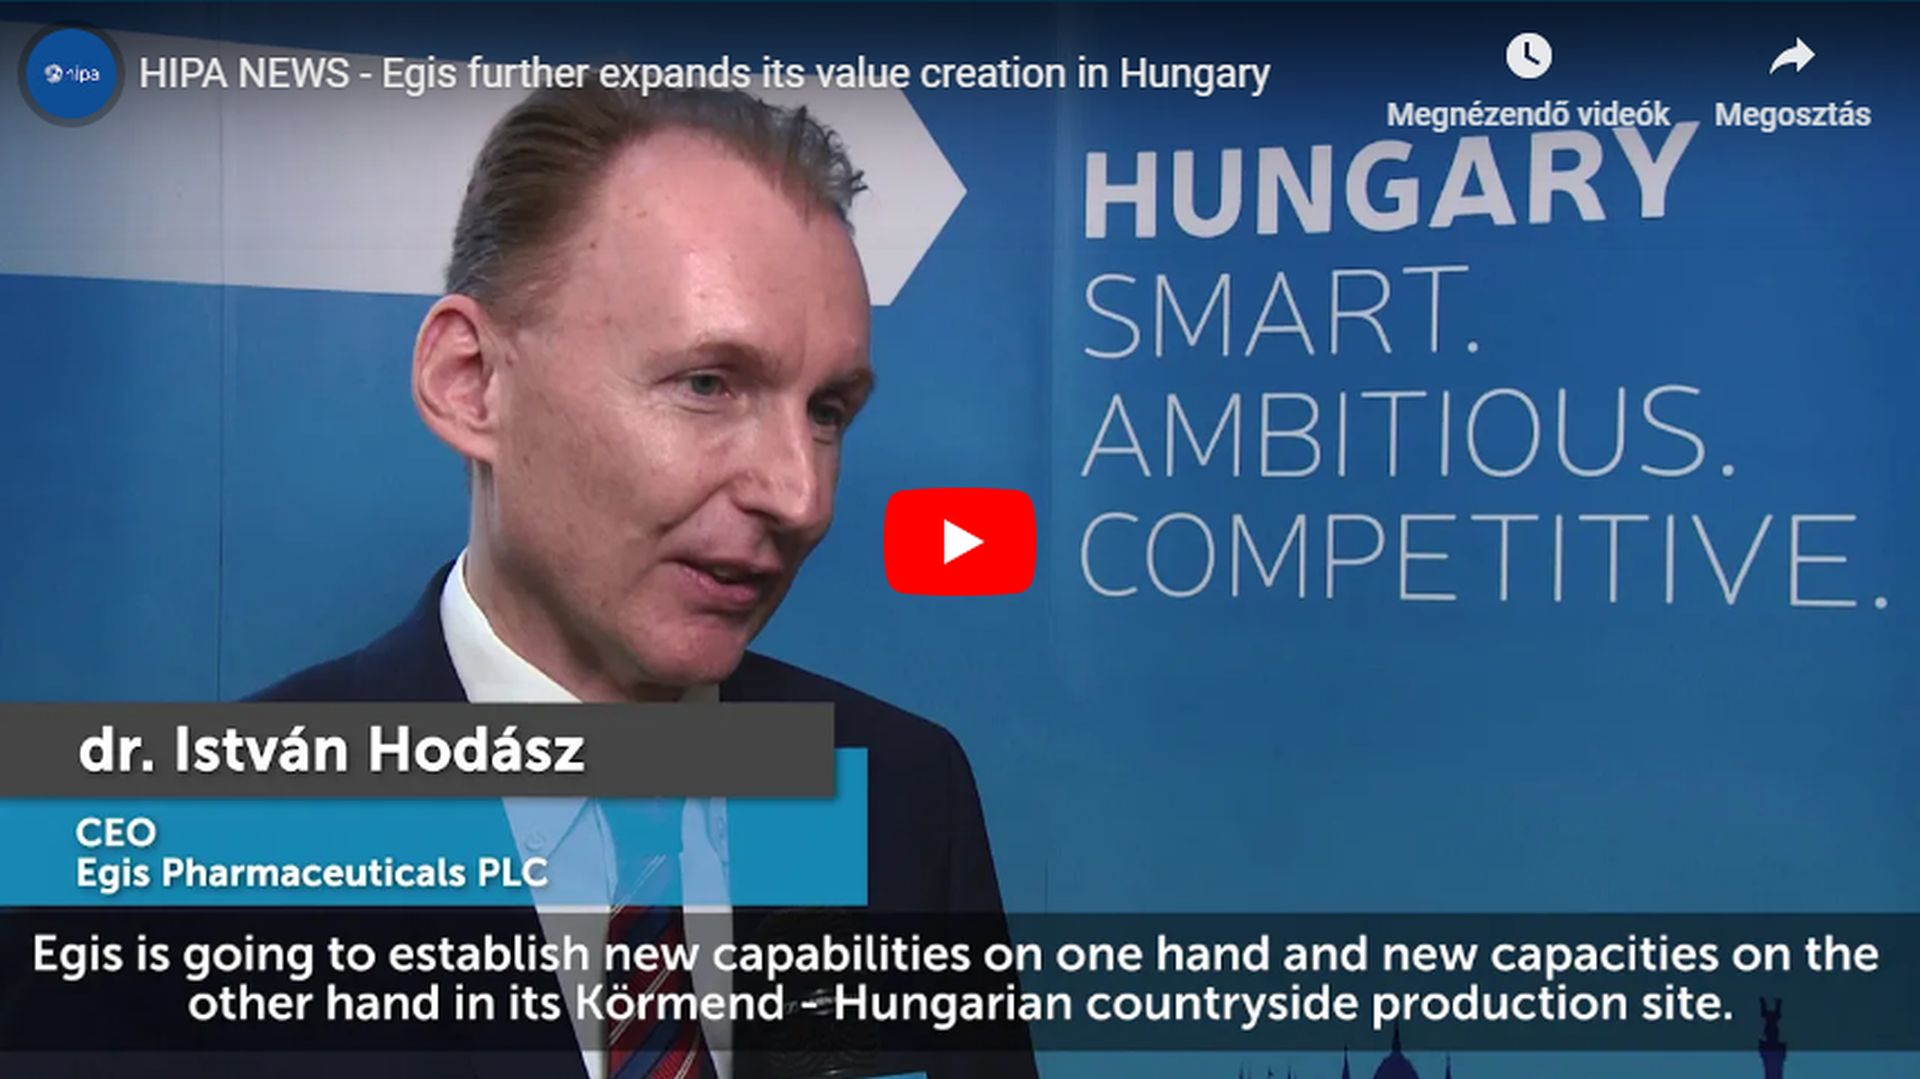 Egis to further enhance its creation of added value in Hungary - VIDEO REPORT